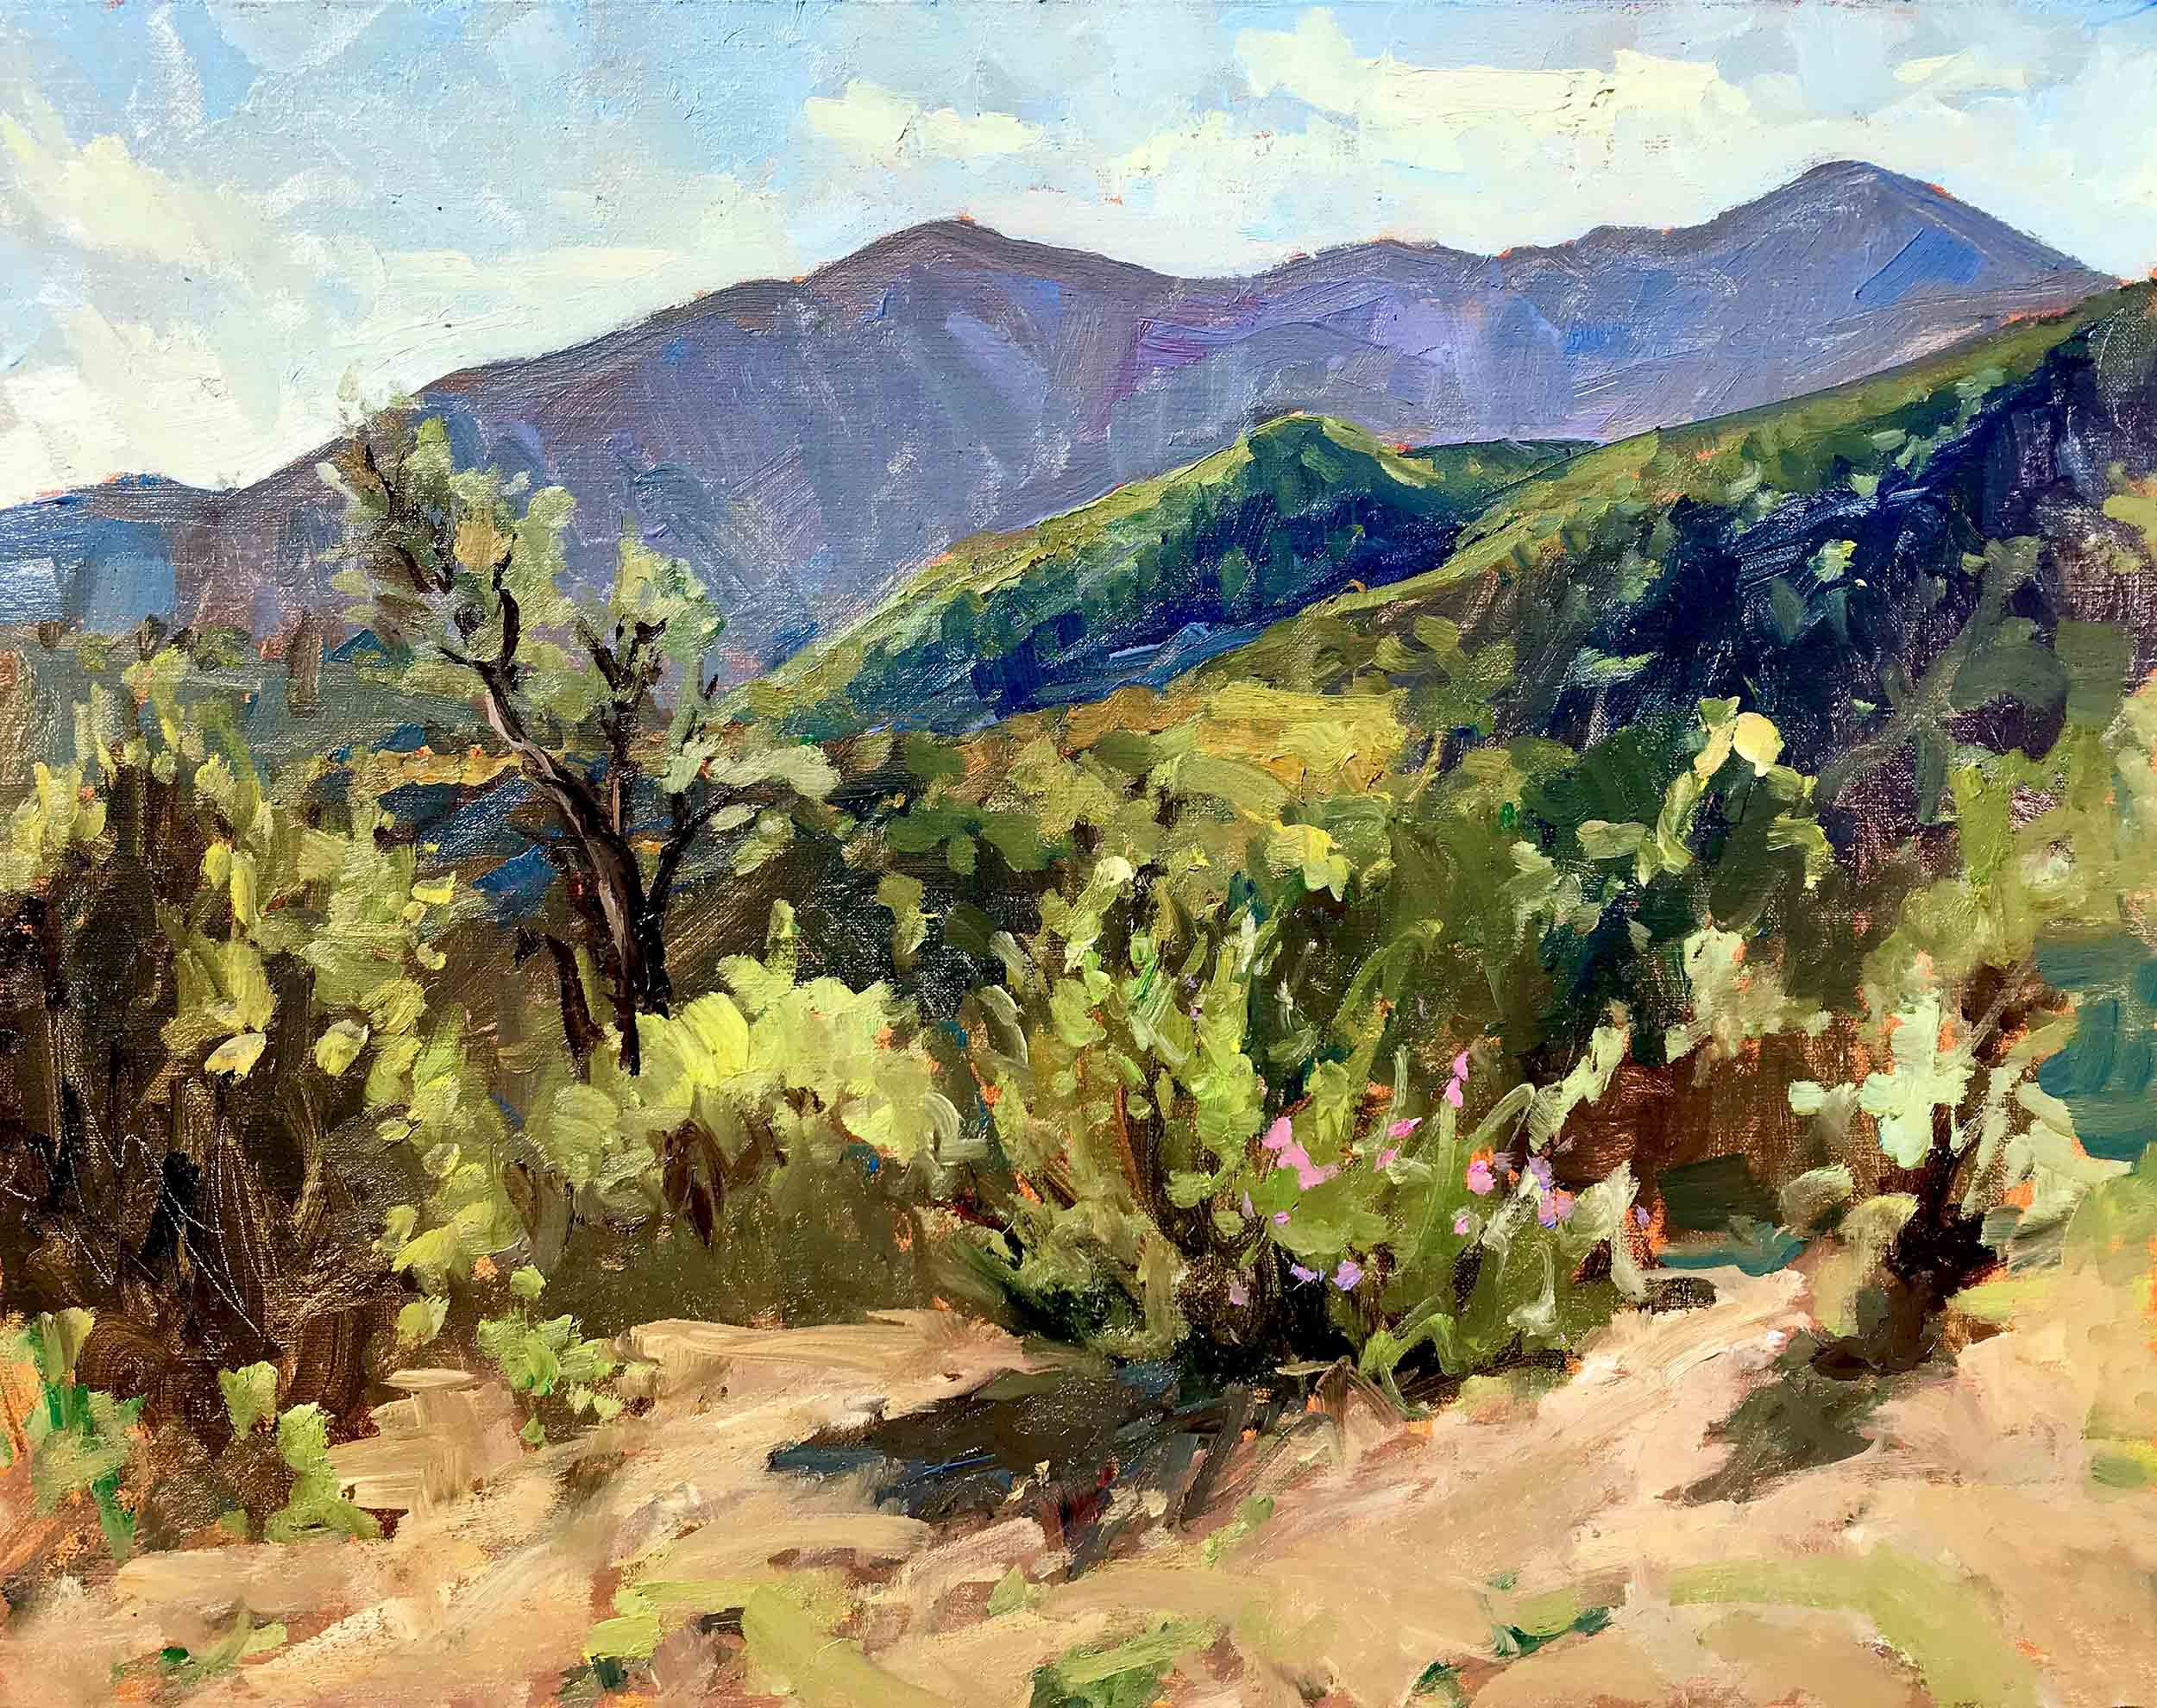 Wild Horse Peak, 11x14 en plein air oil painting by Brad Betts. Painted from Sunset Point at Dorland Mountain Arts Colony.